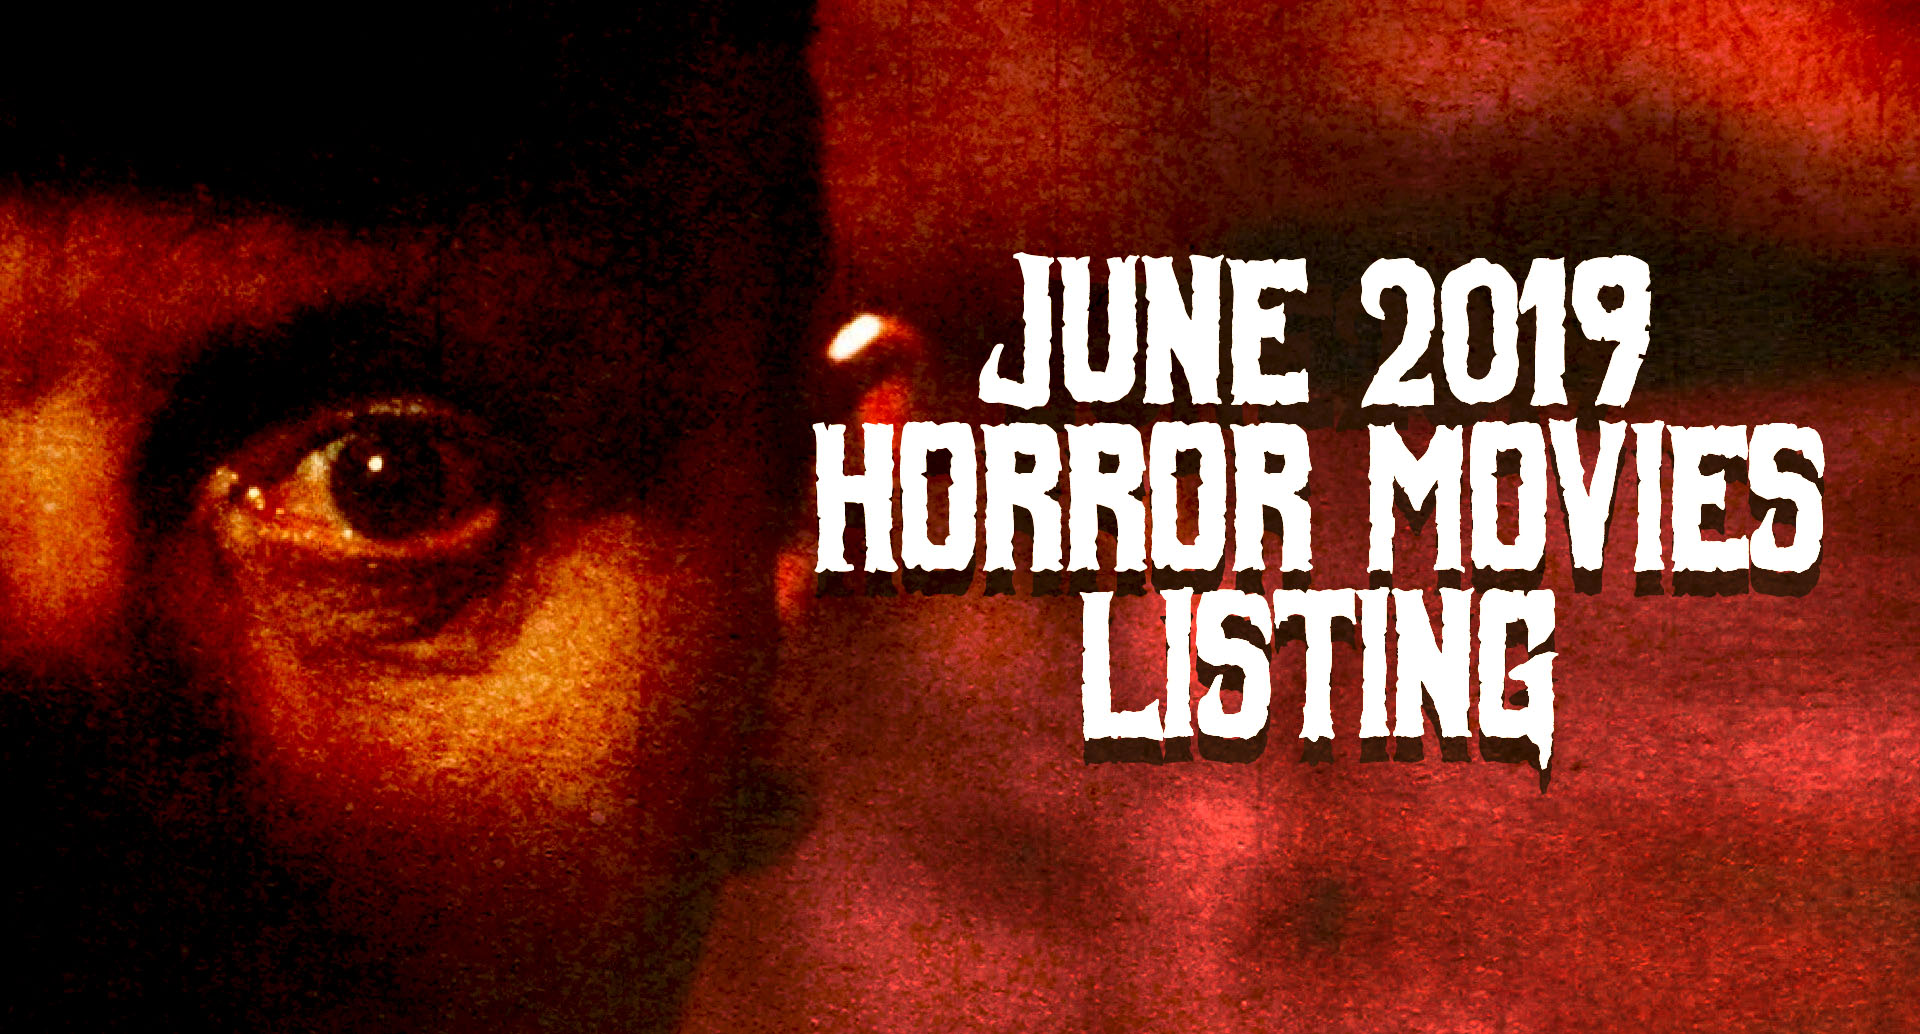 Horror Movies Showing in June 2019